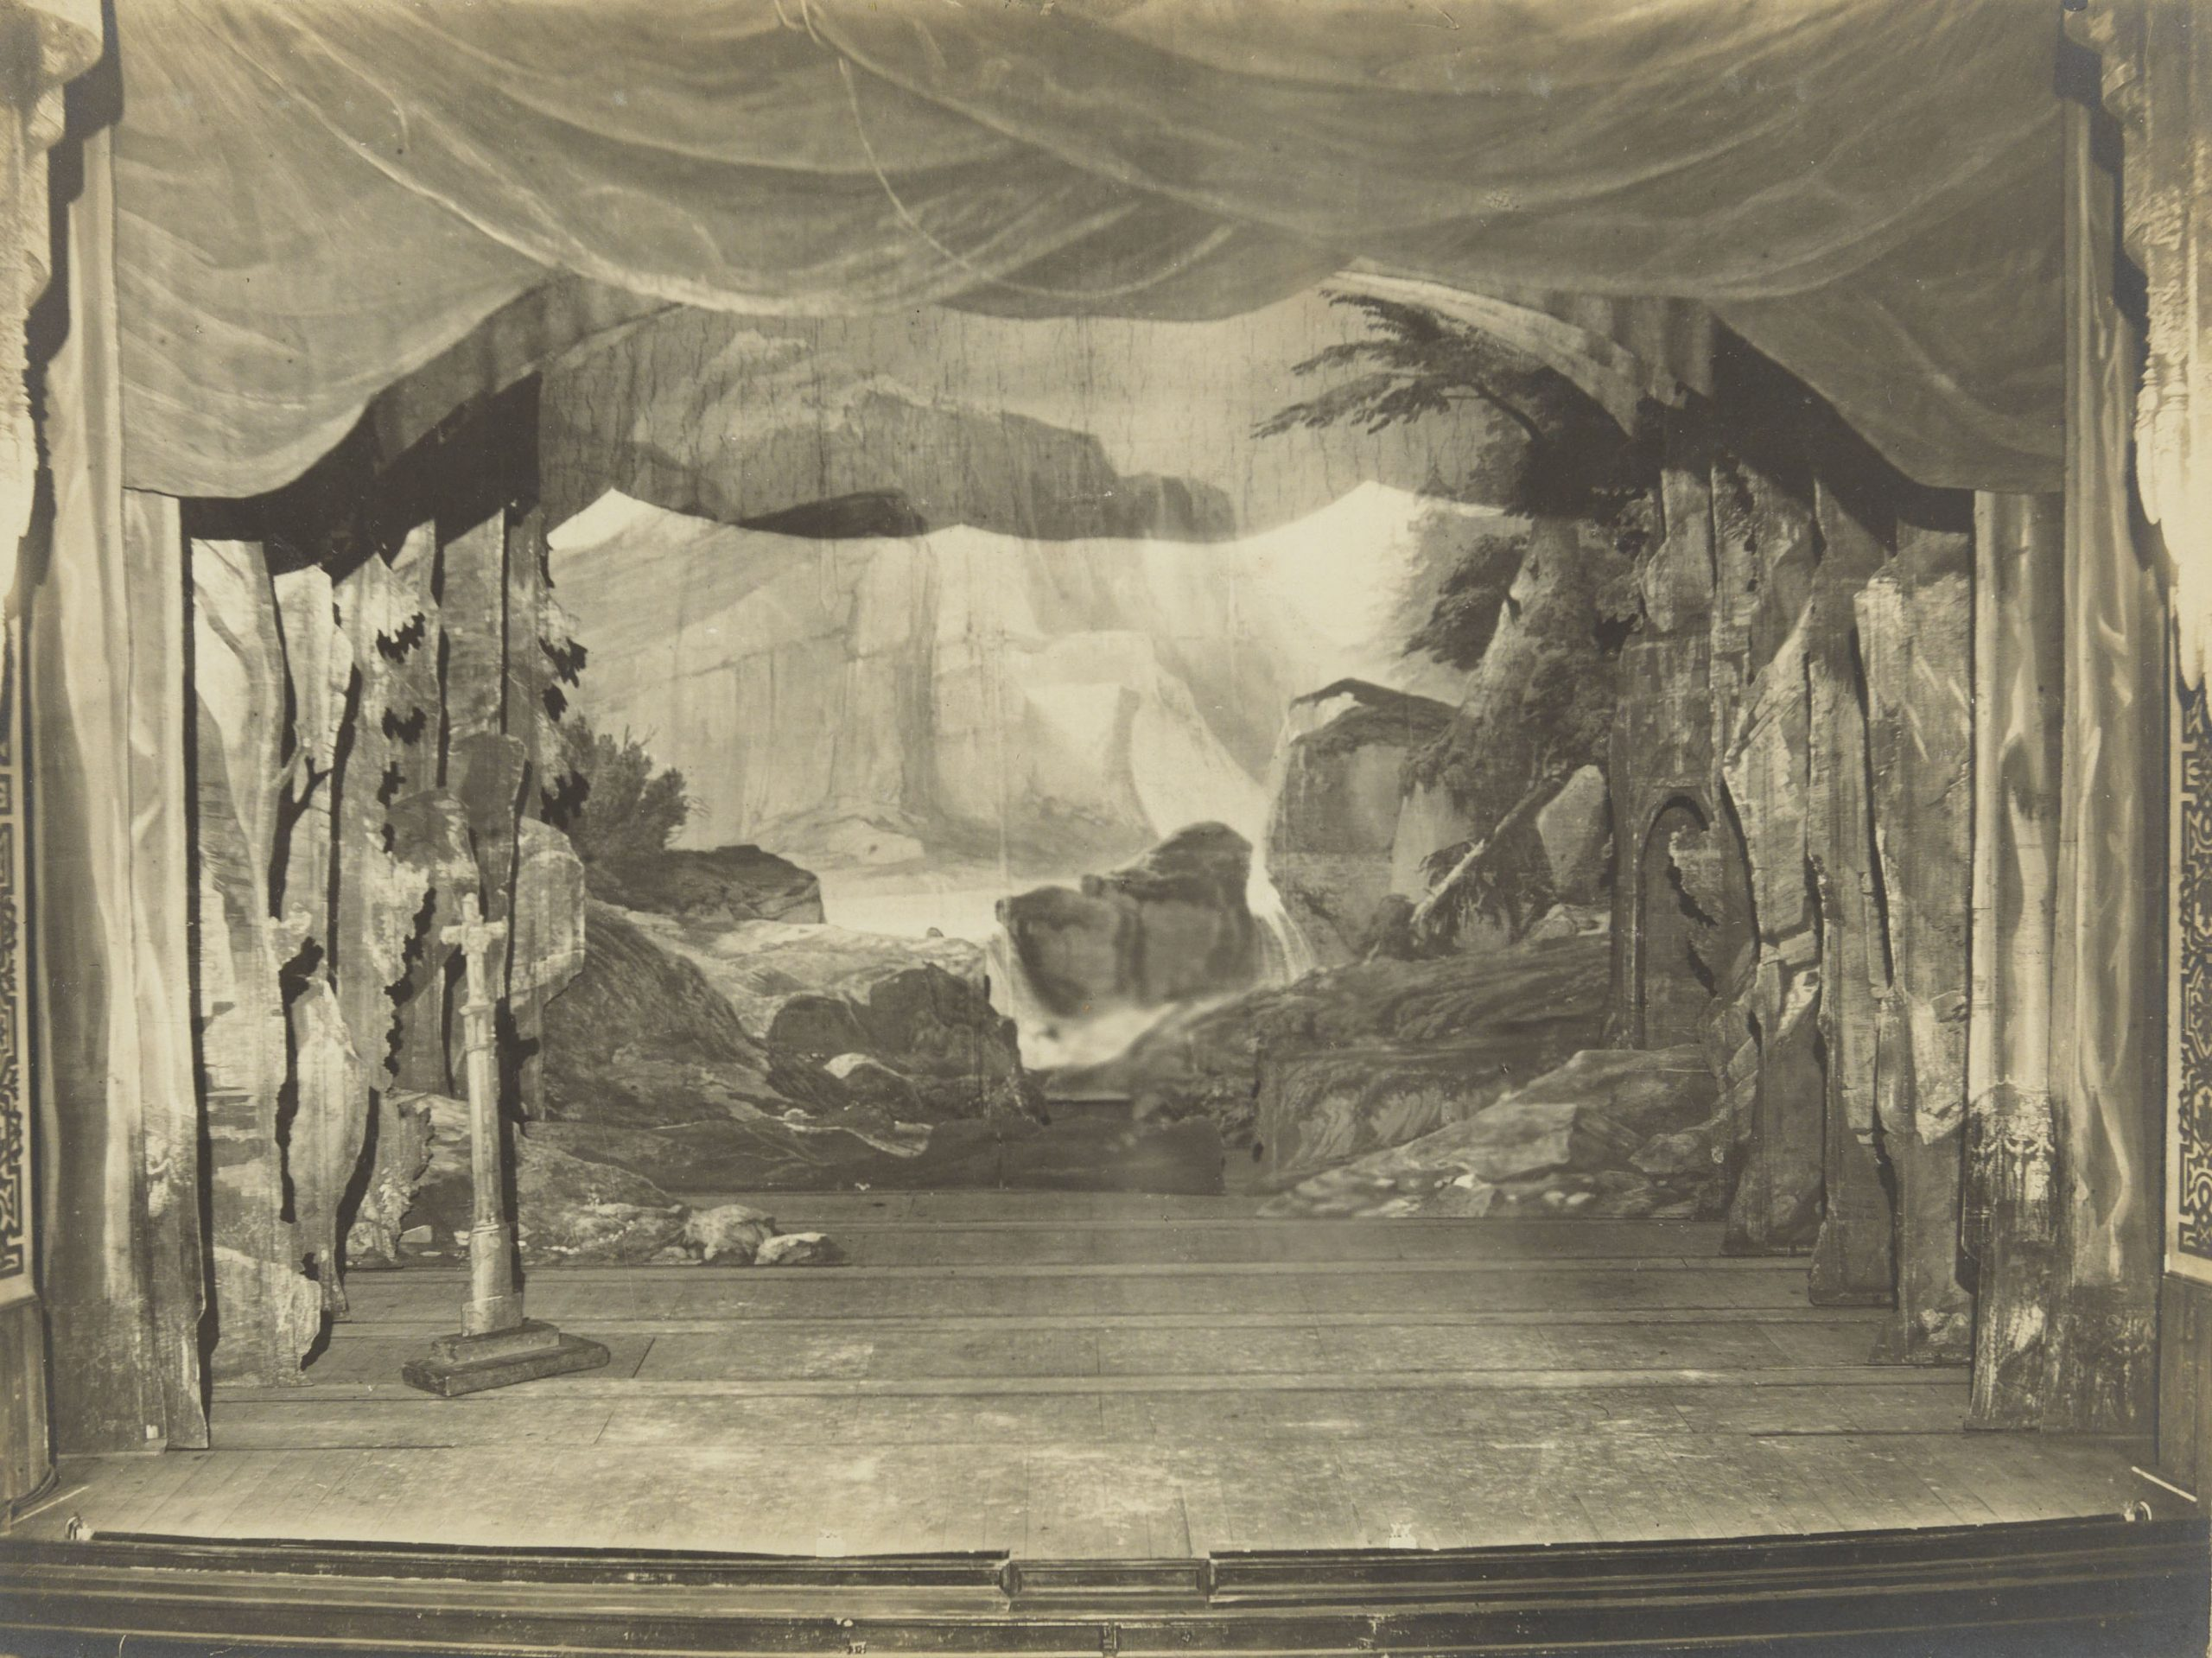 Acte III - Rochers-Site sauvage et pittoresque, Grand Théâtre, Ghent, 1877